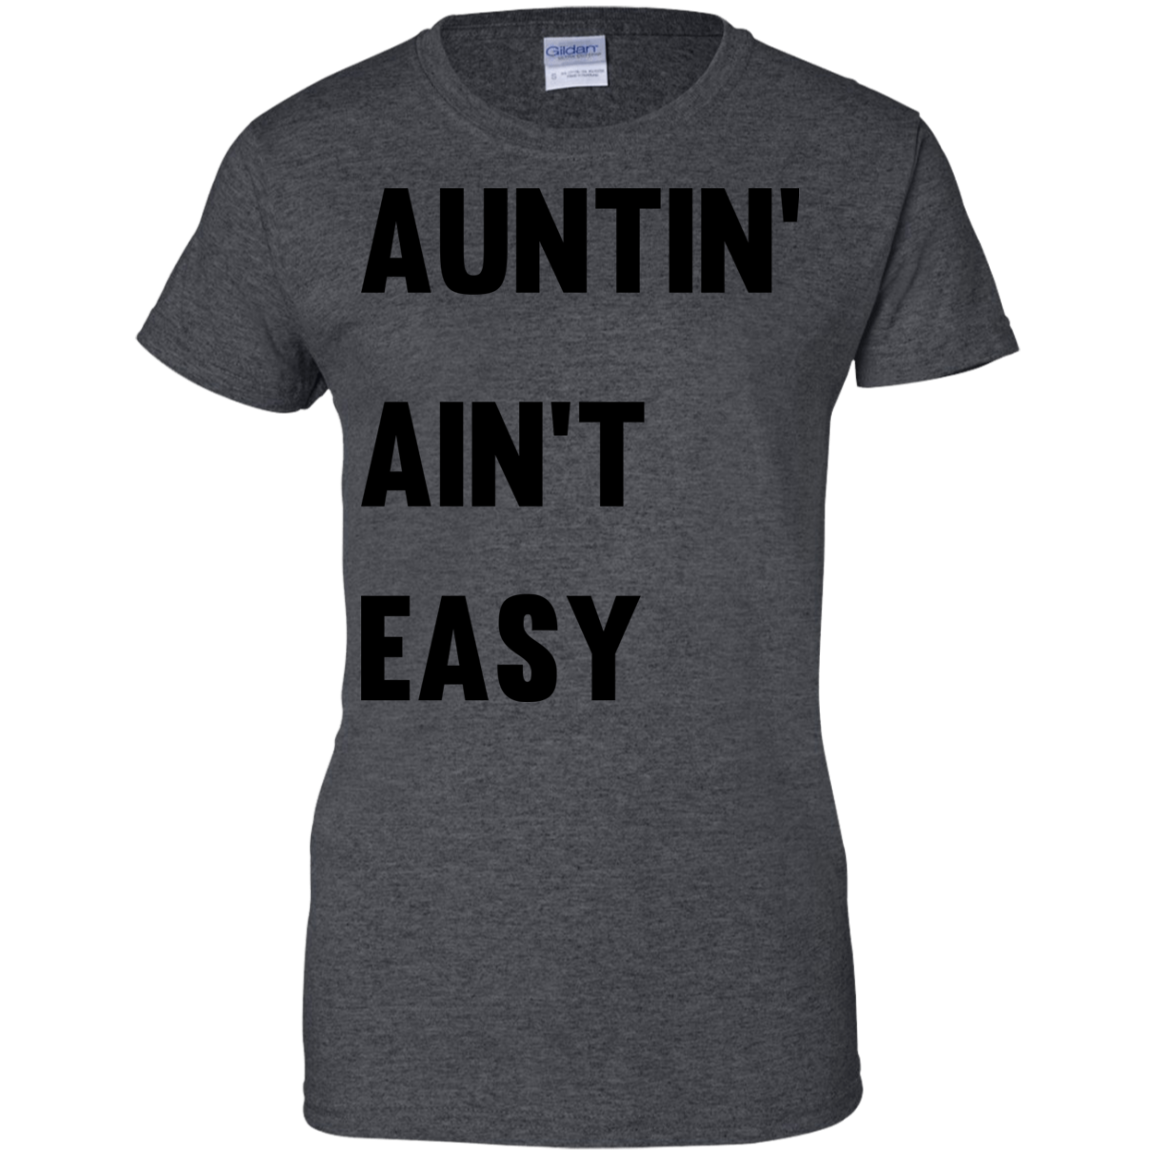 image 213px Aunt Shirt: Auntin' Ain't Easy T Shirts, Hoodies, Long Sleeves